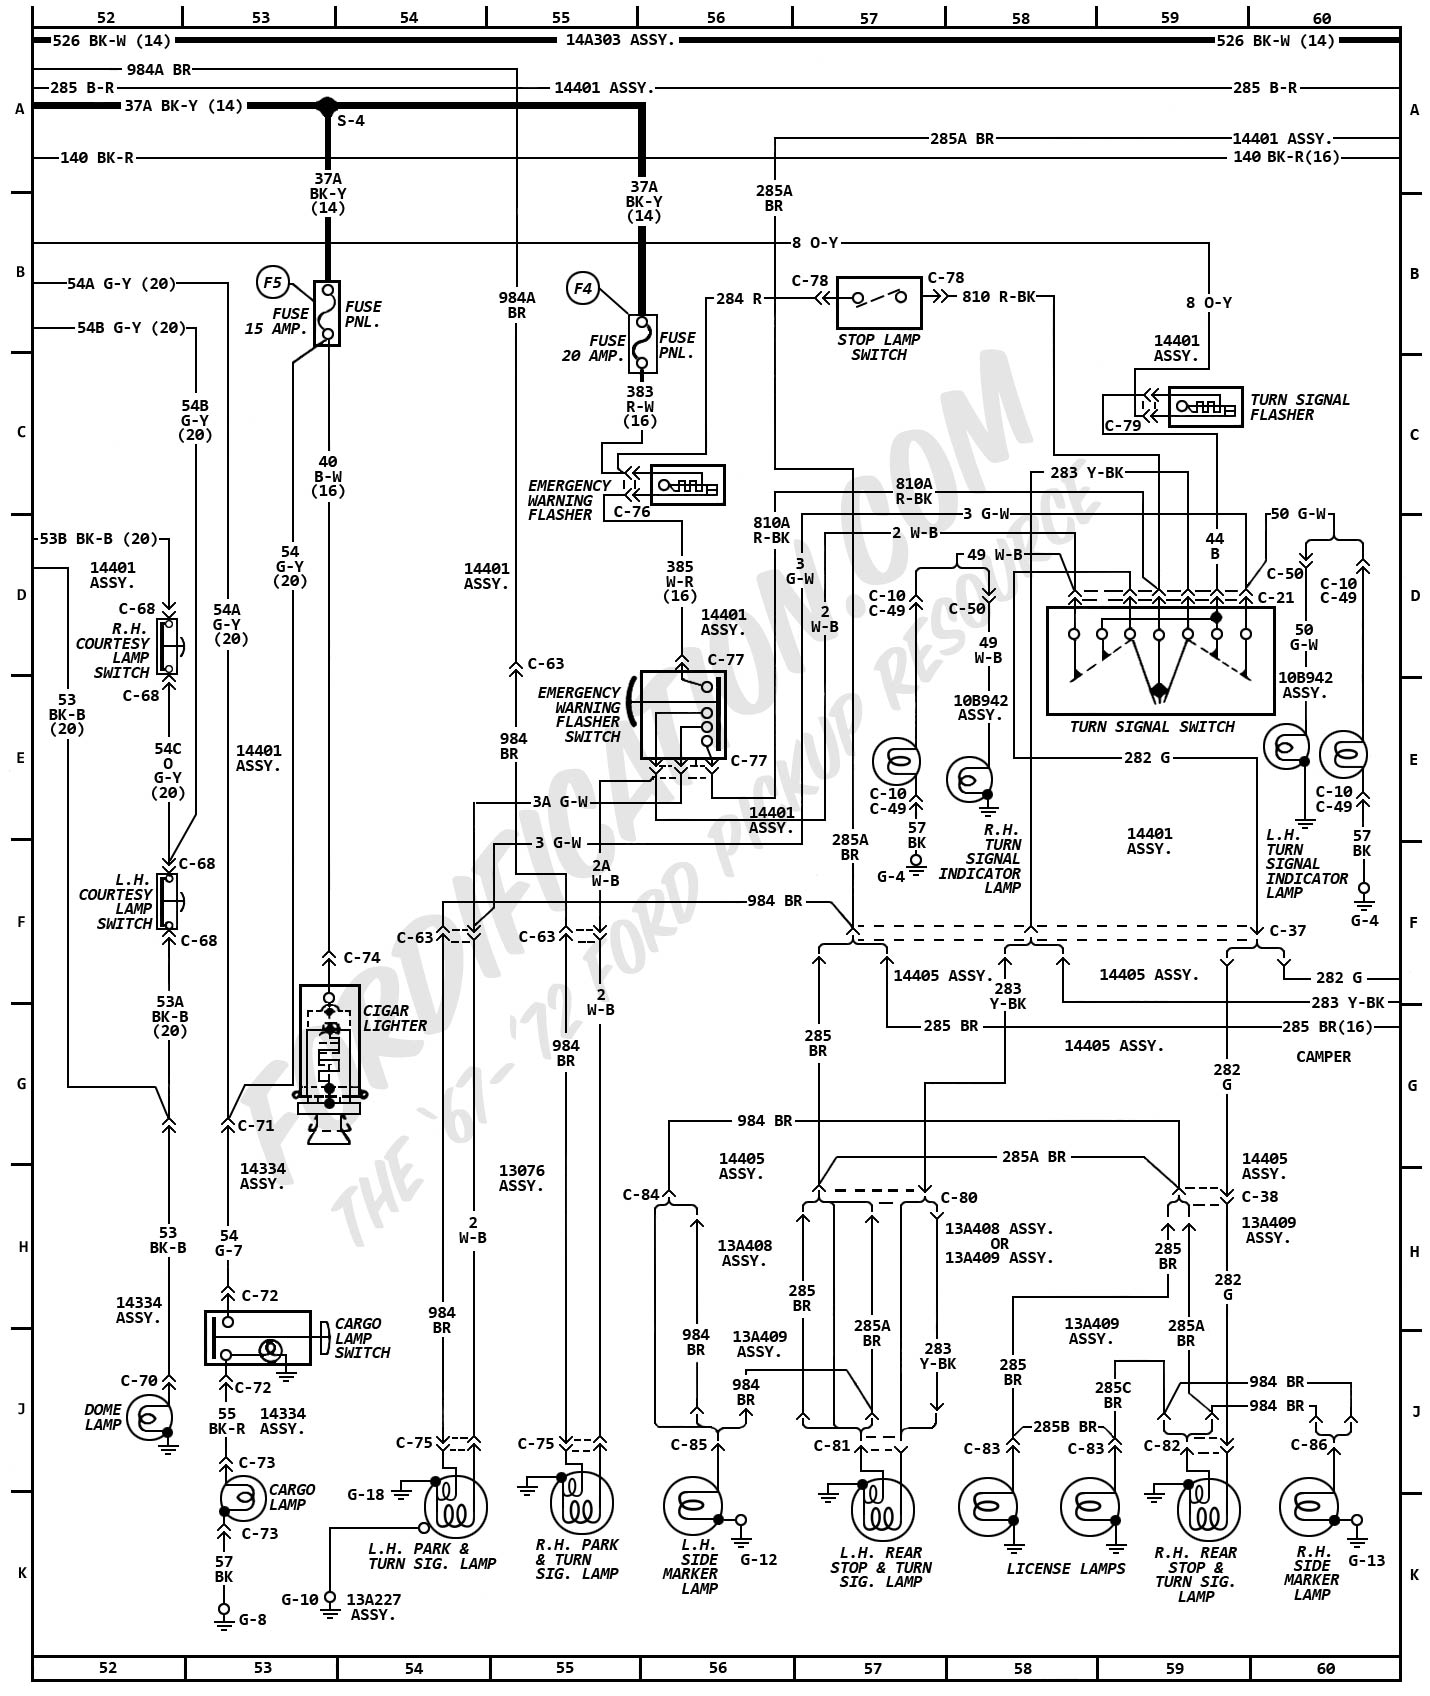 1956 Vw Wiring Diagram Trusted Diagrams Starter Basic Beetle Fiat Uno Super